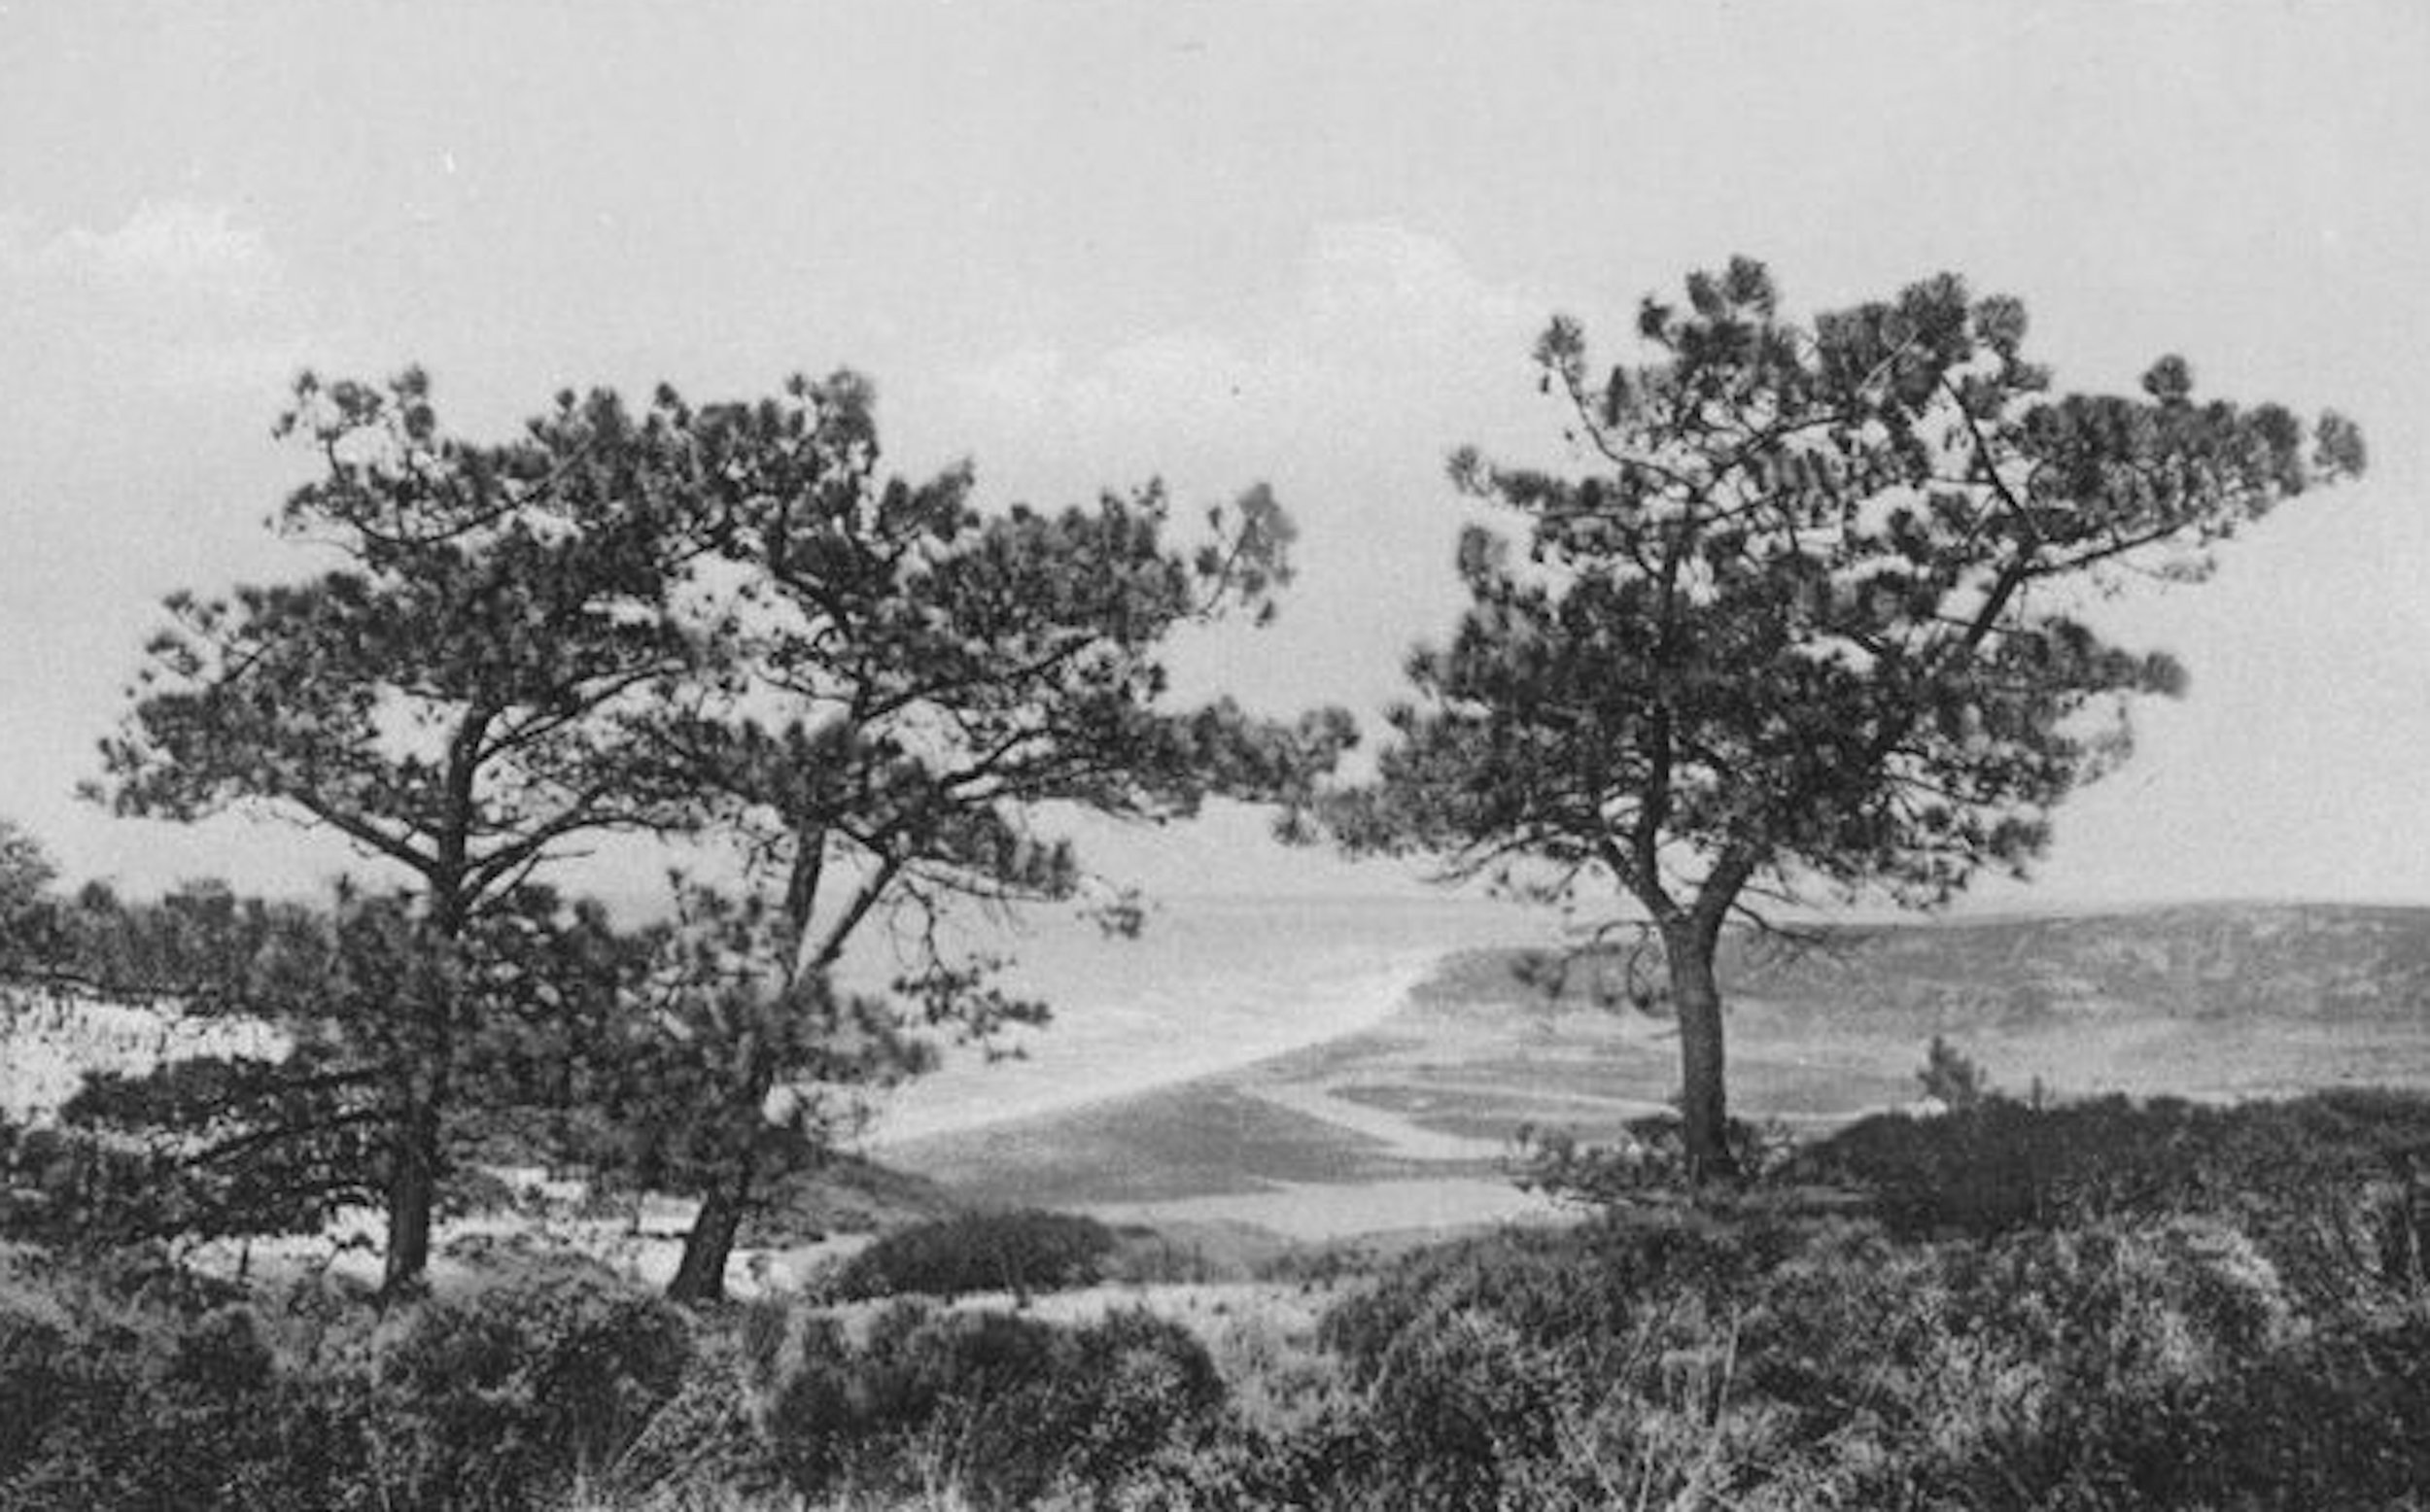 La Jolla is the only place on mainland America where the Torrey Pine grows.